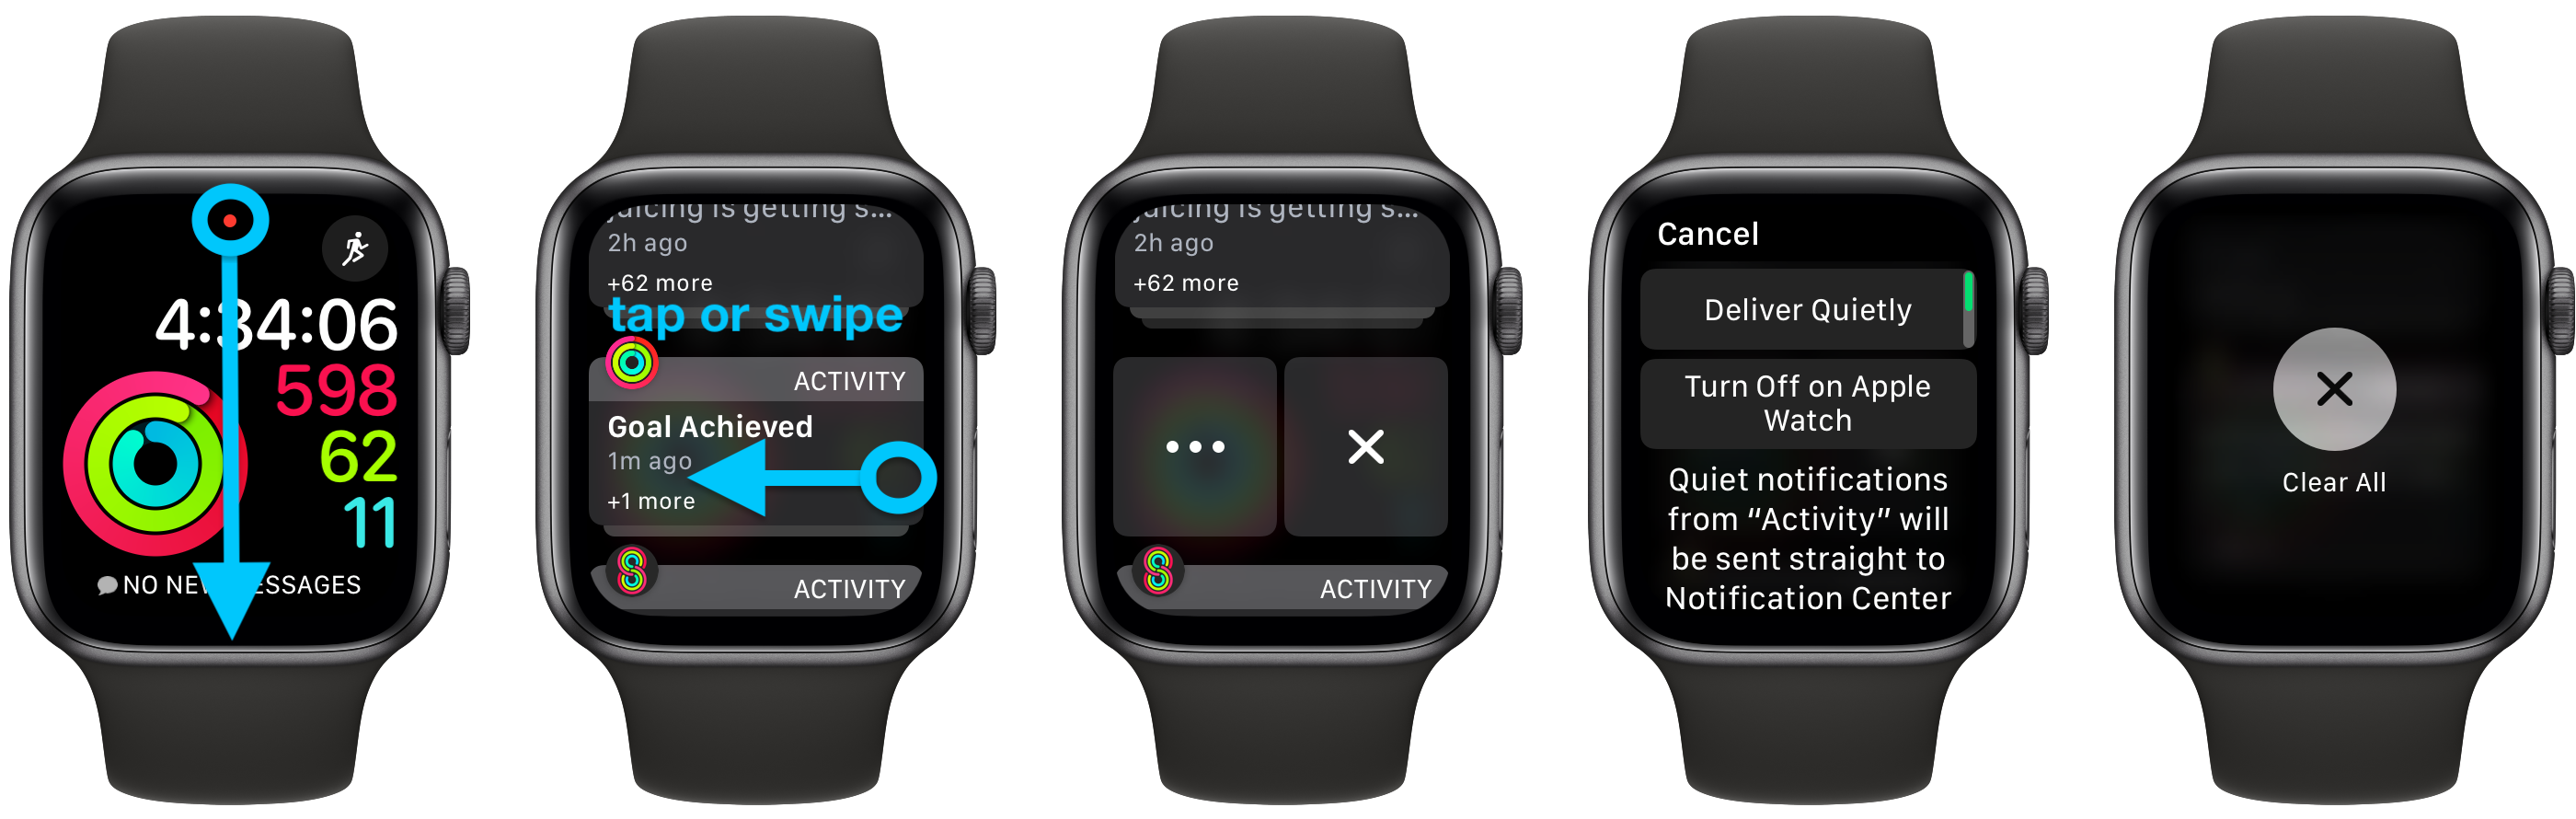 How to see Apple Watch notifications walkthrough 1